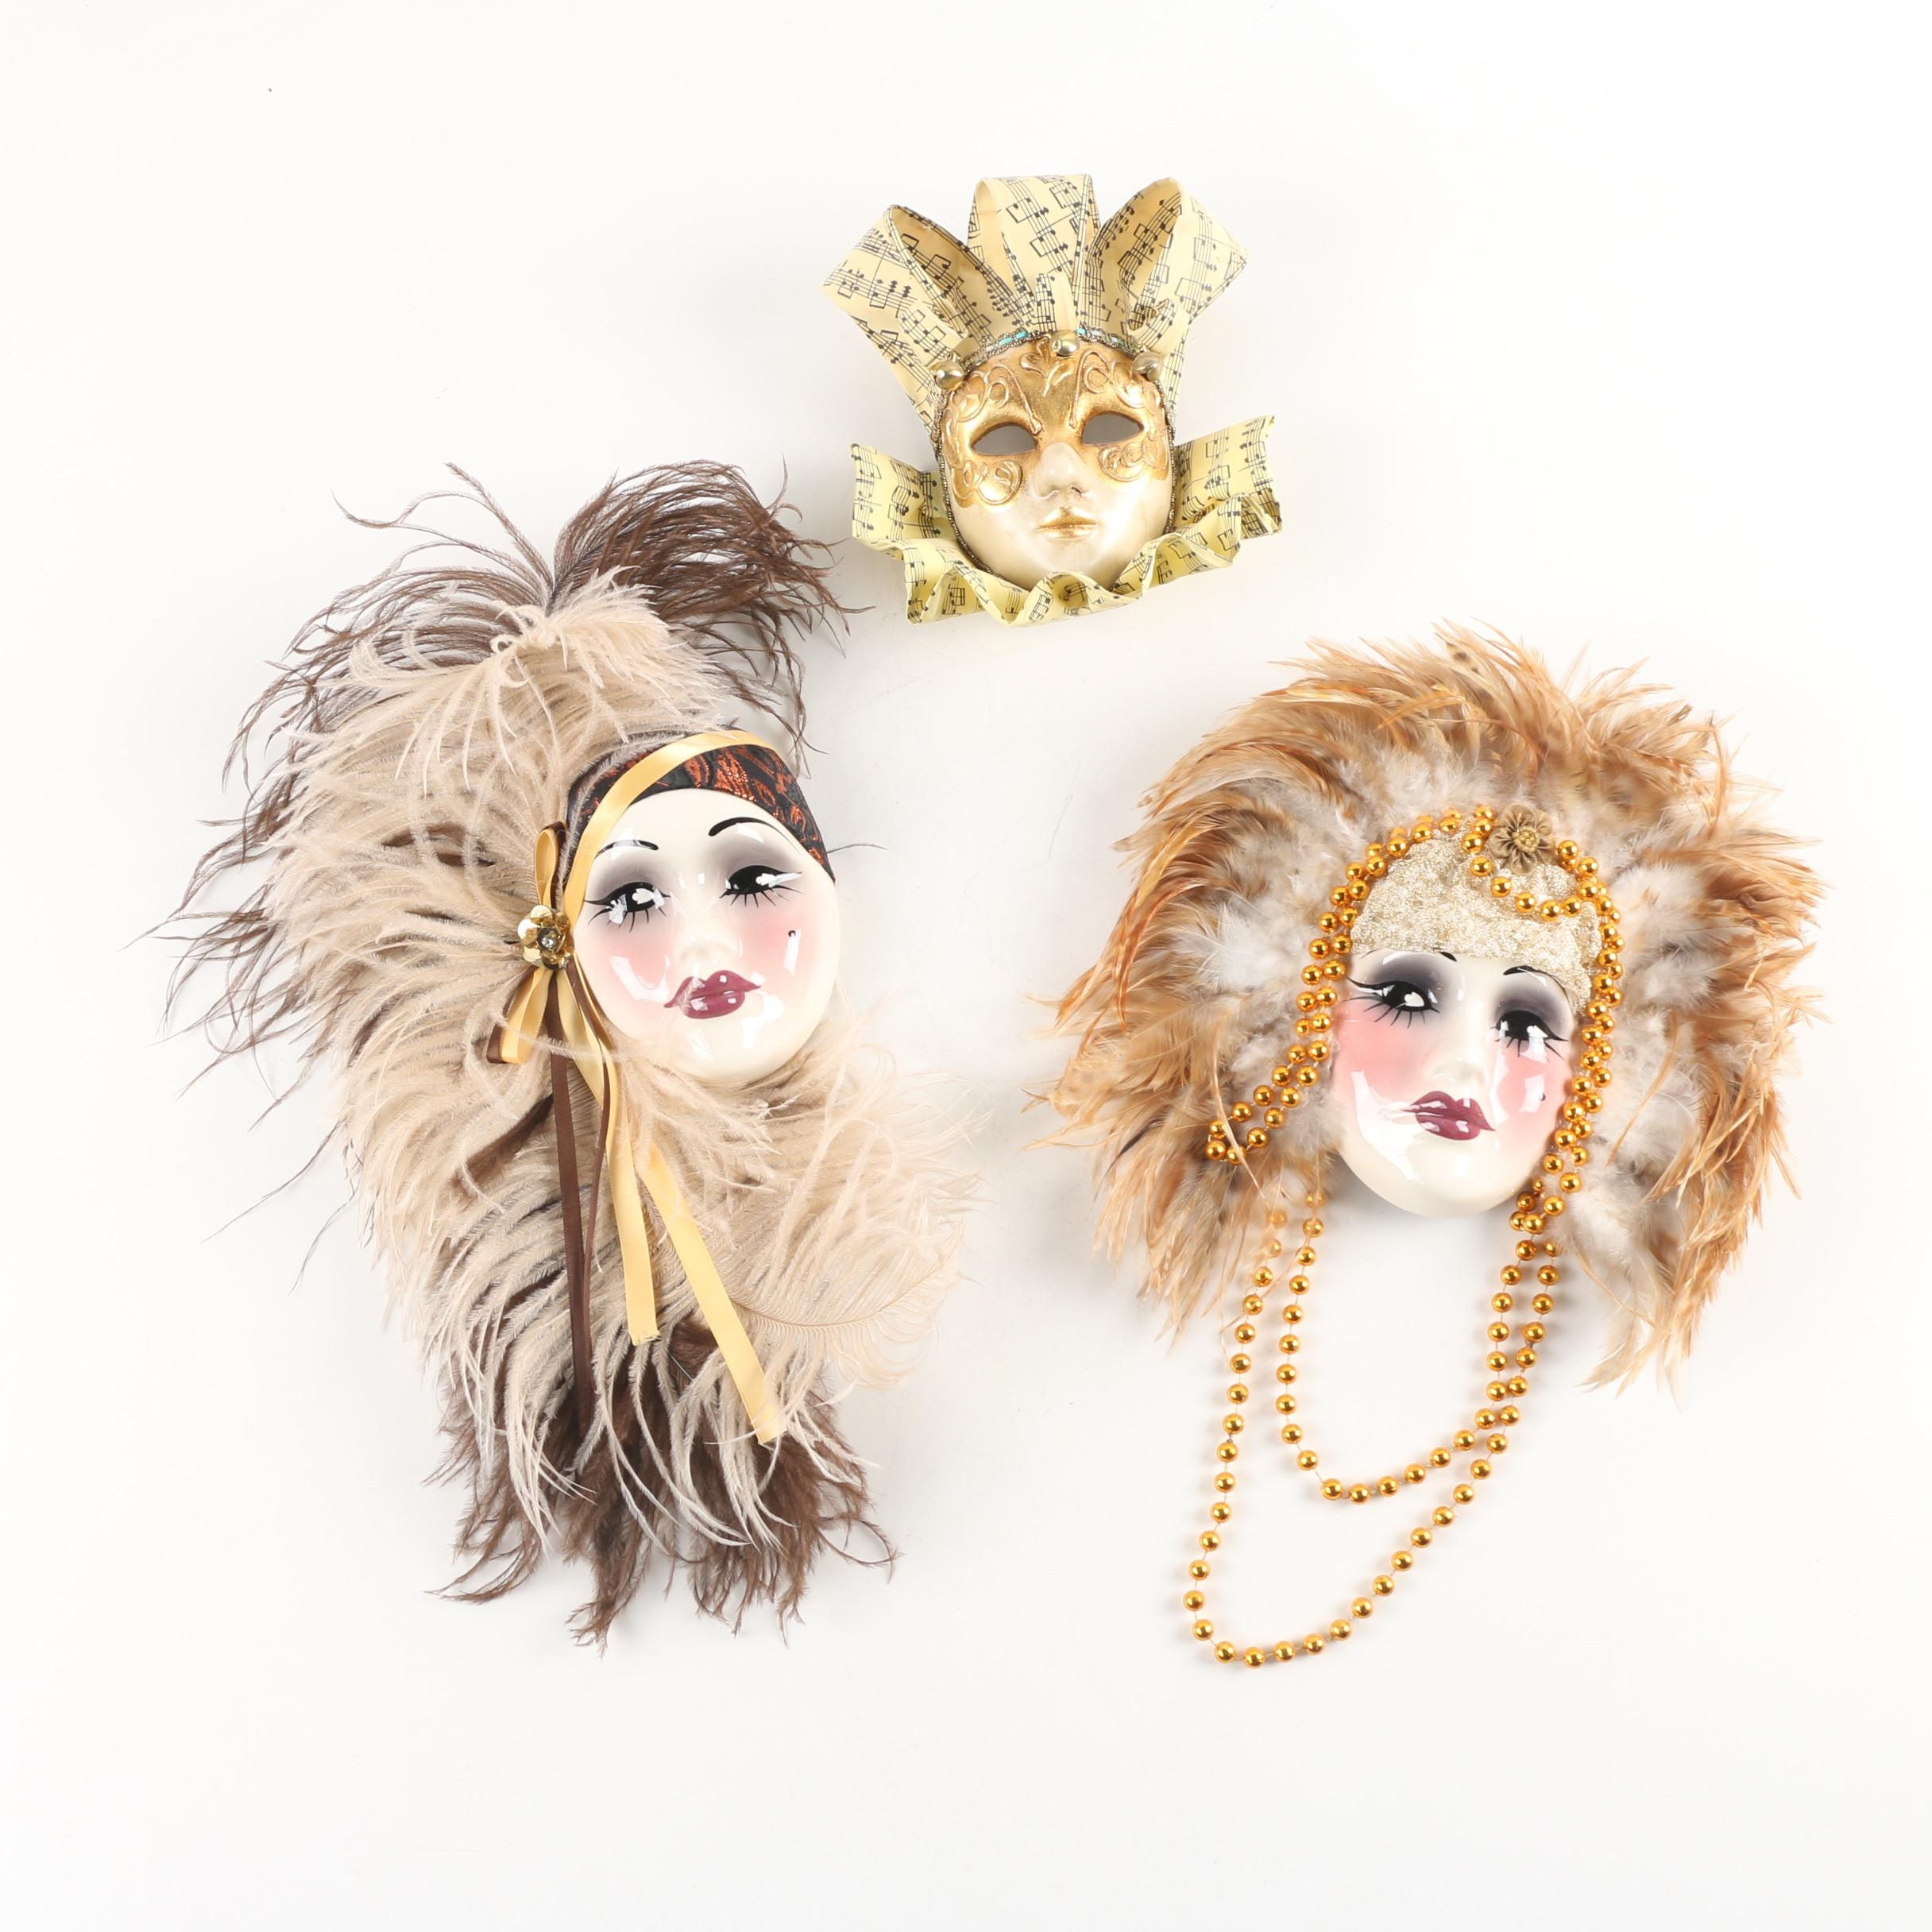 Unique Creations and Venetian Made Carnival Style Decorative Masks